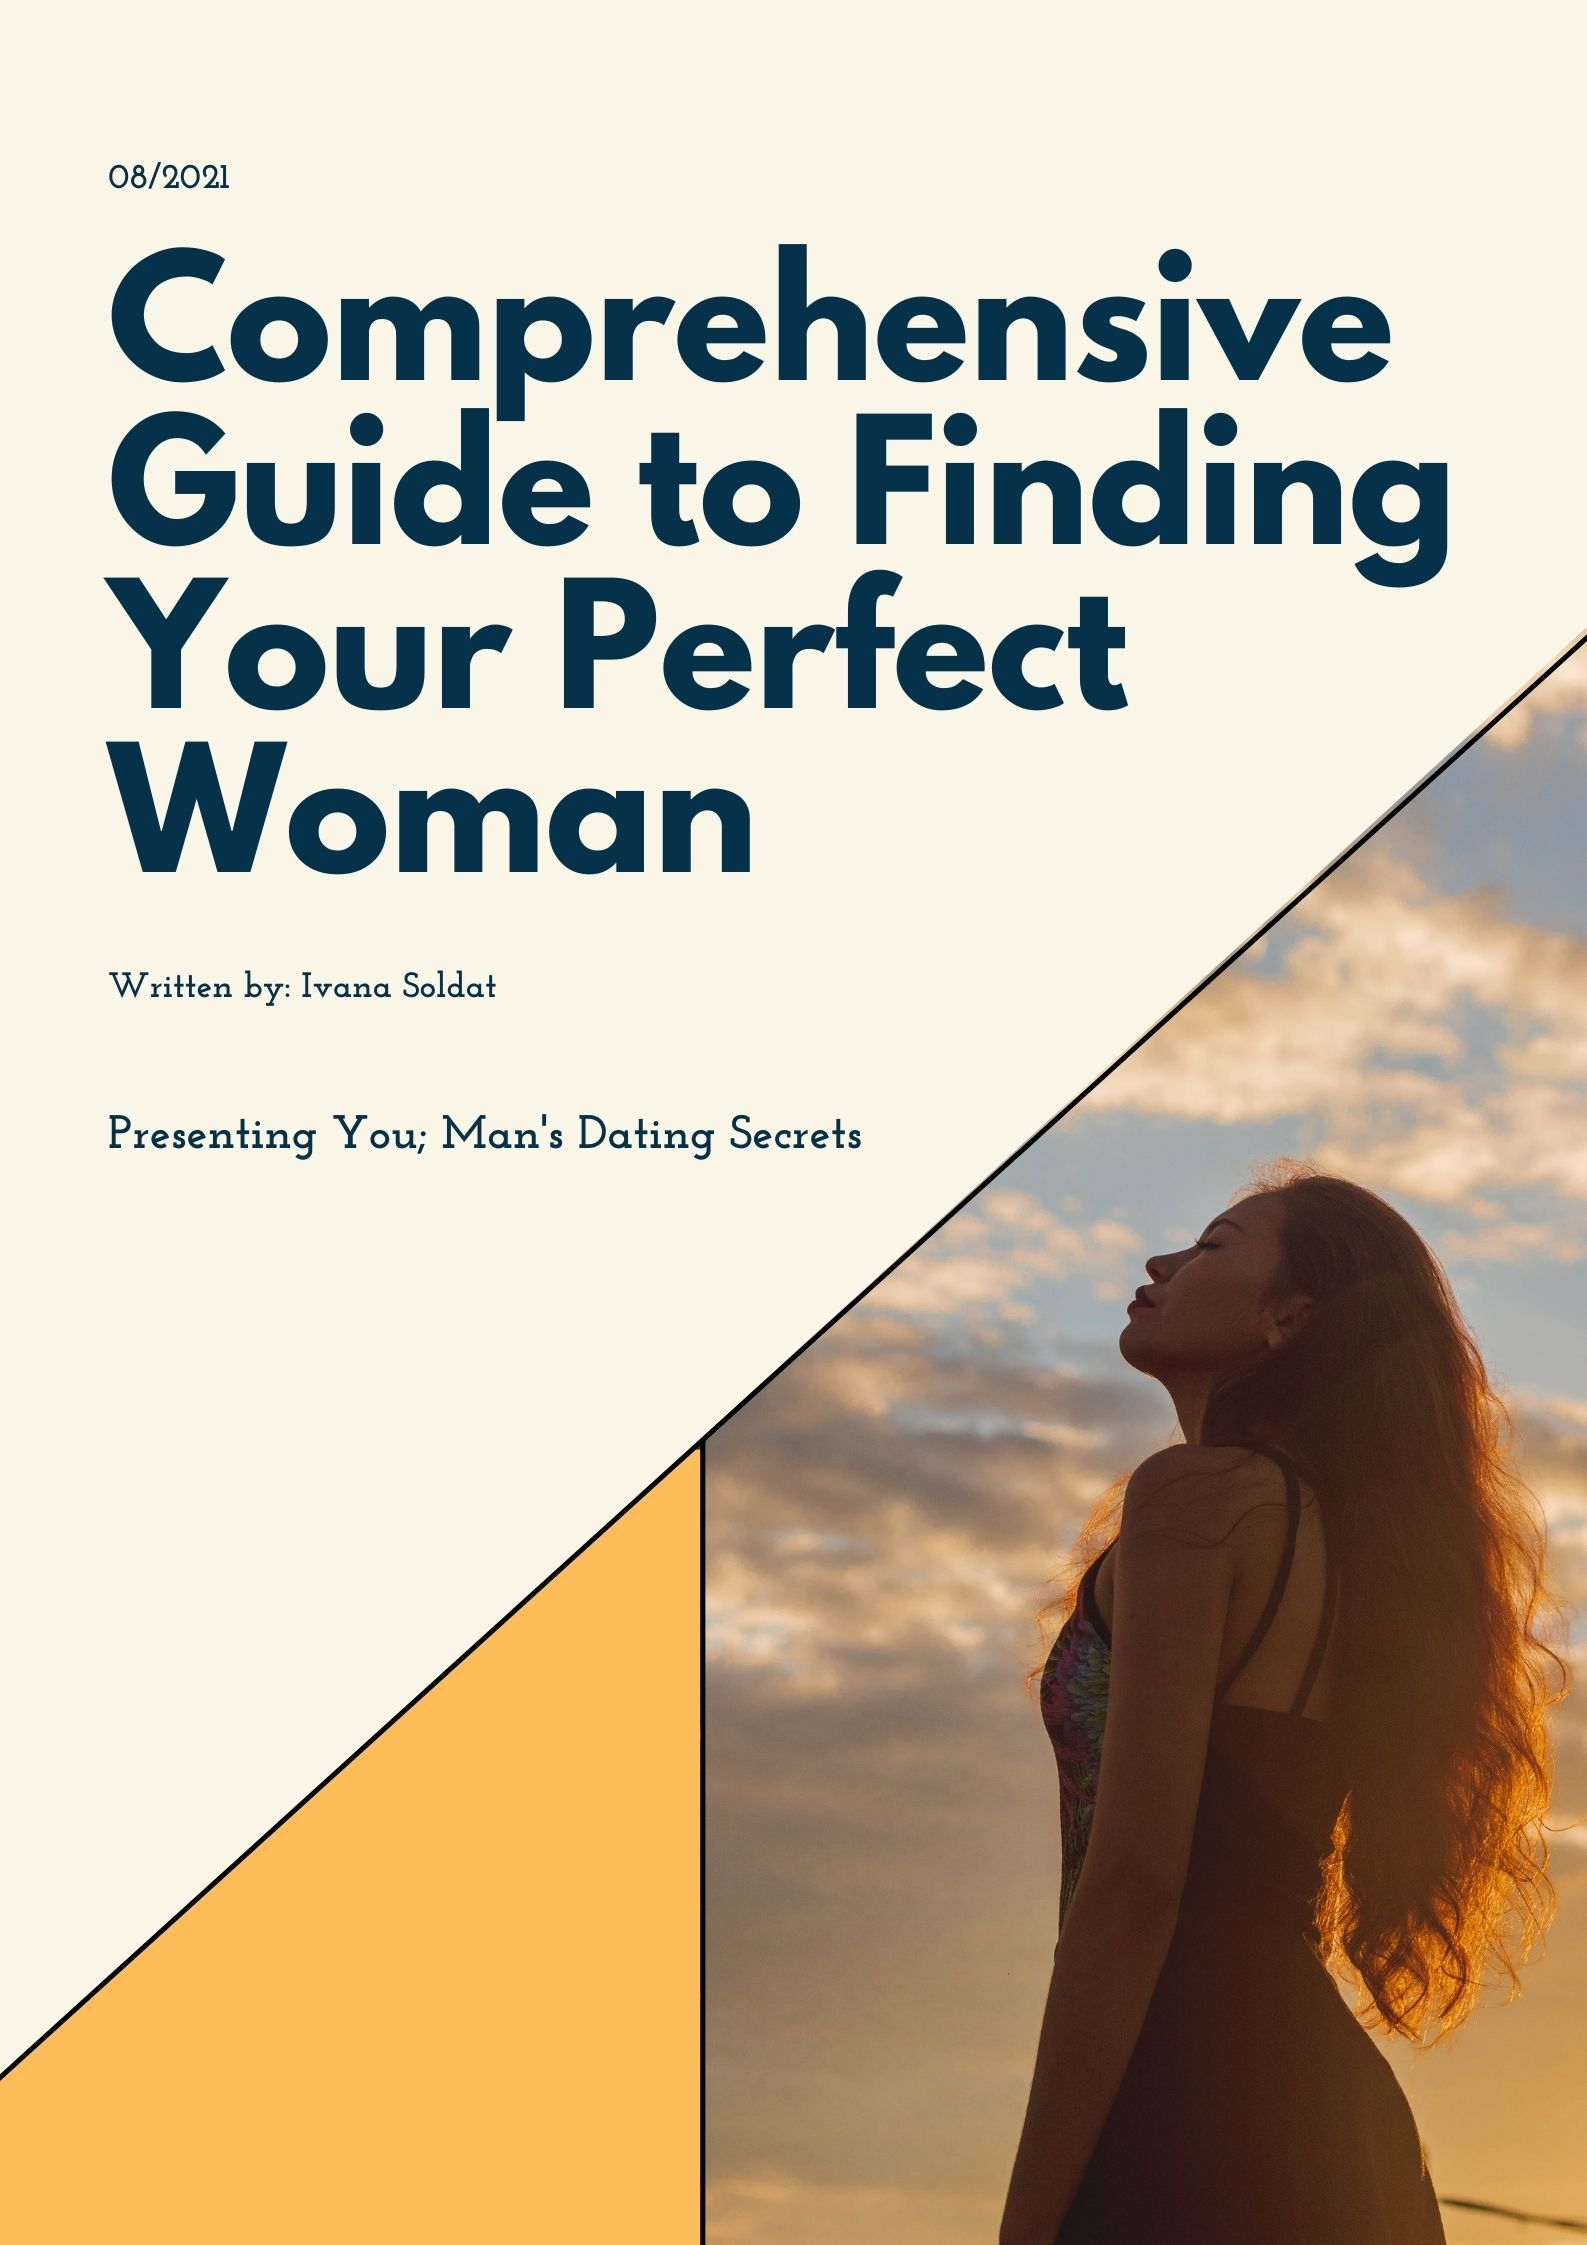 A Comprehensive Guide to Finding Your Perfect Woman's Book Image